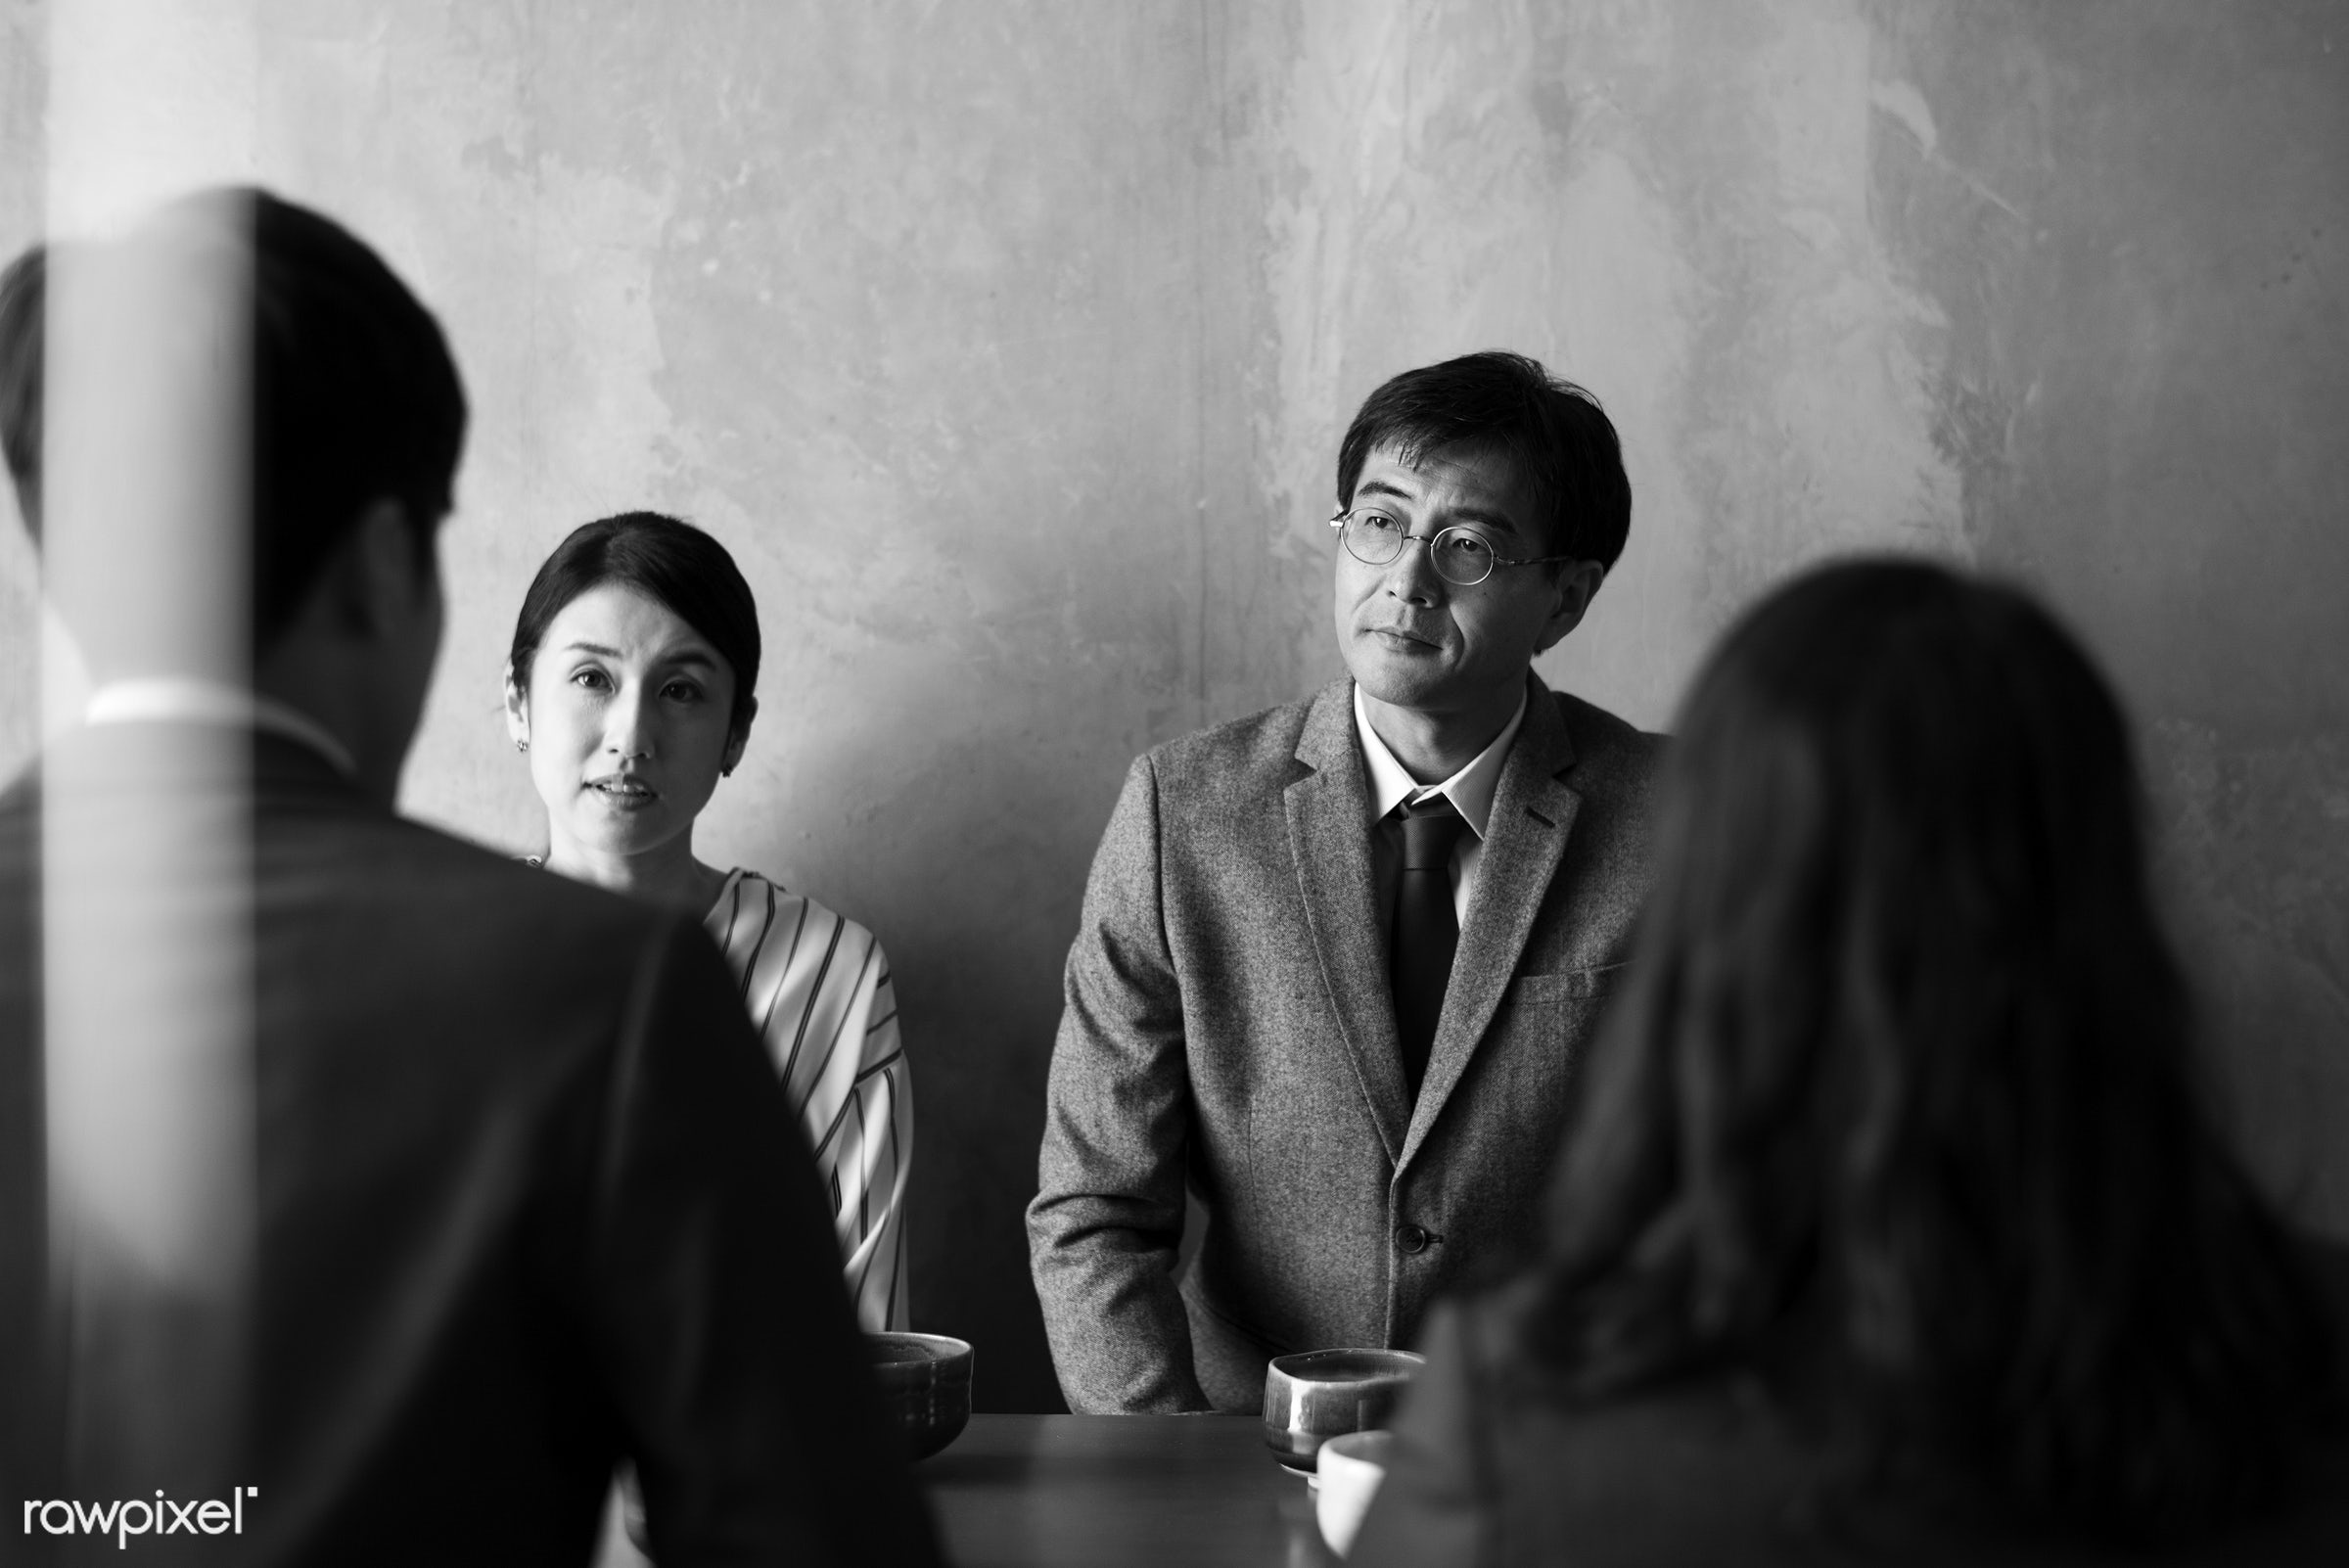 Japanese people discussing - japanese, corporate, asia, asian, business, business people, businessmen, businesswomen, cafe...